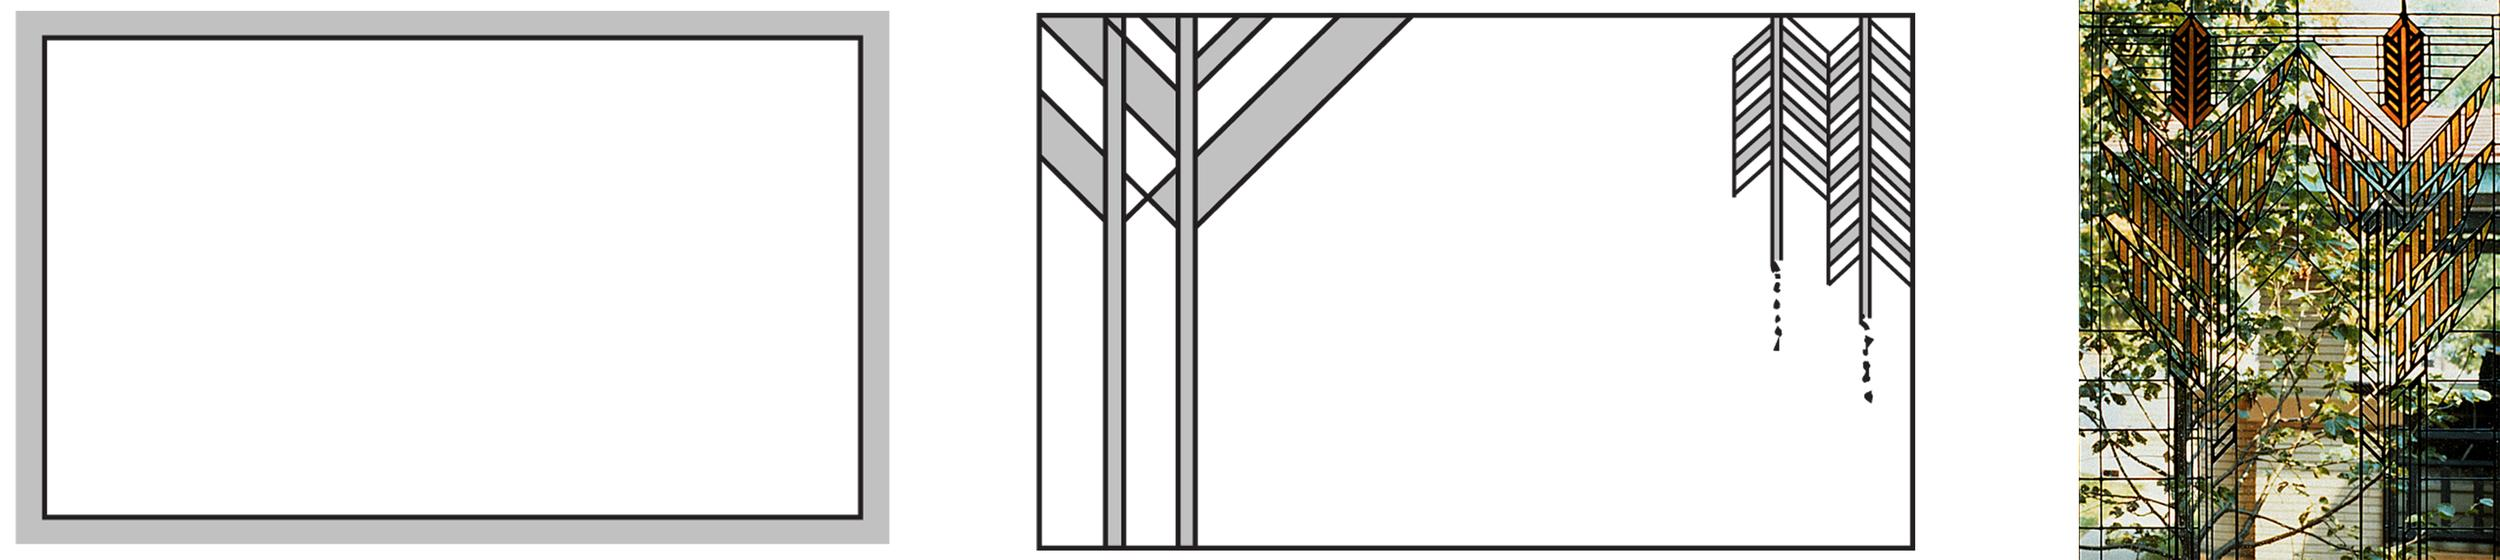 conventional window frame